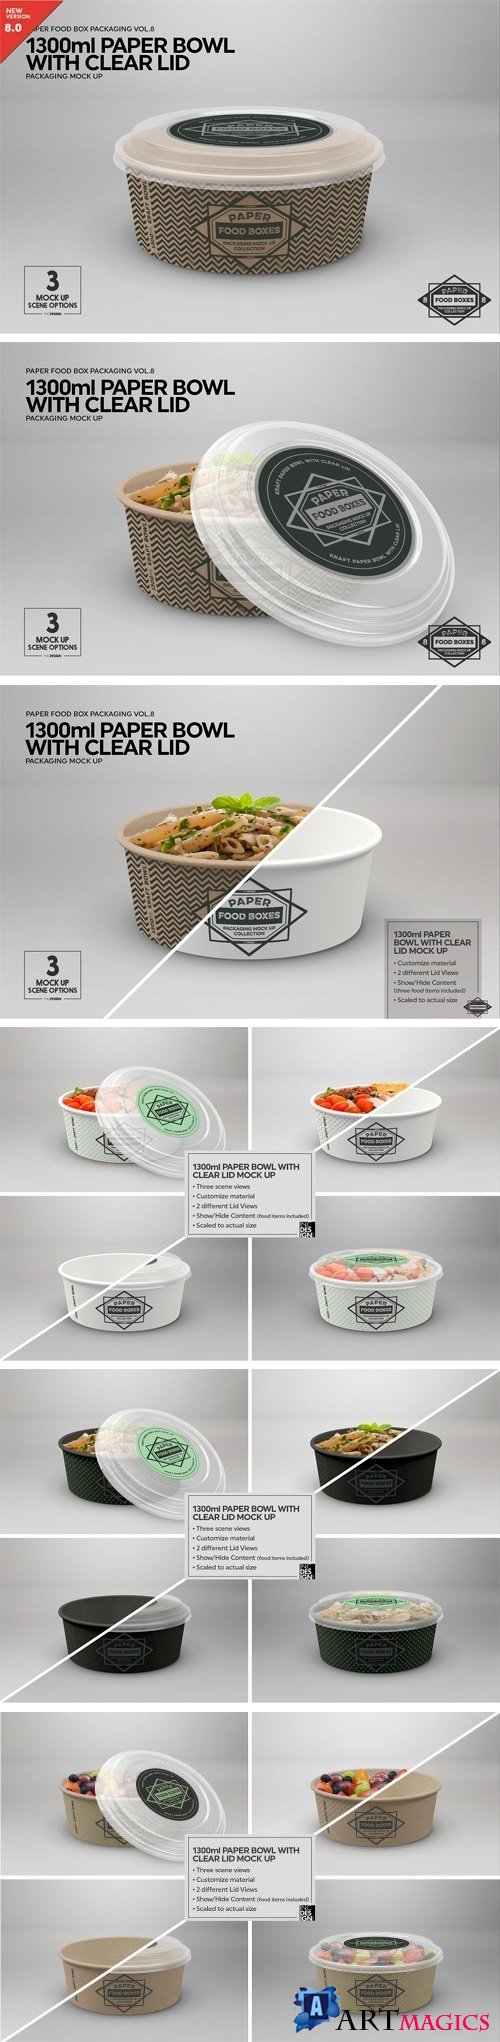 1300ml Paper Bowl Clear Lid MockUp - 2181793